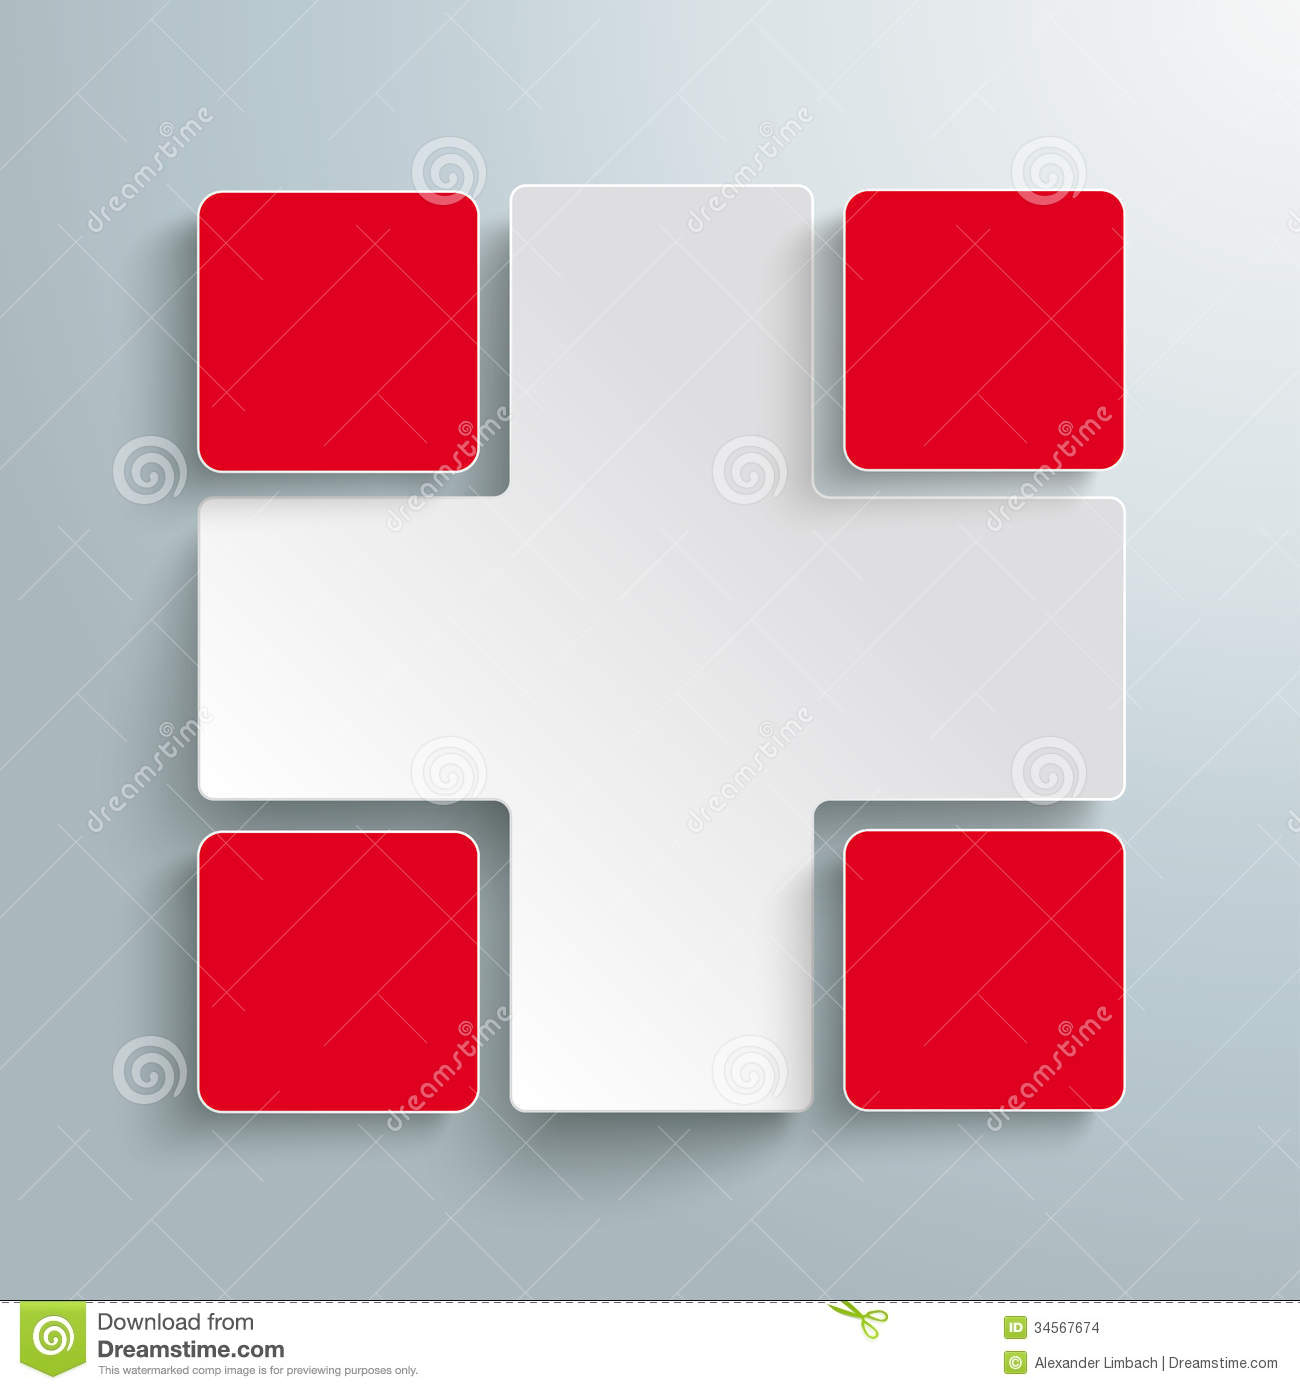 Infographic design on the grey background eps 10 vector file - White Cross 4 Red Rectangles Piad Stock Images Image